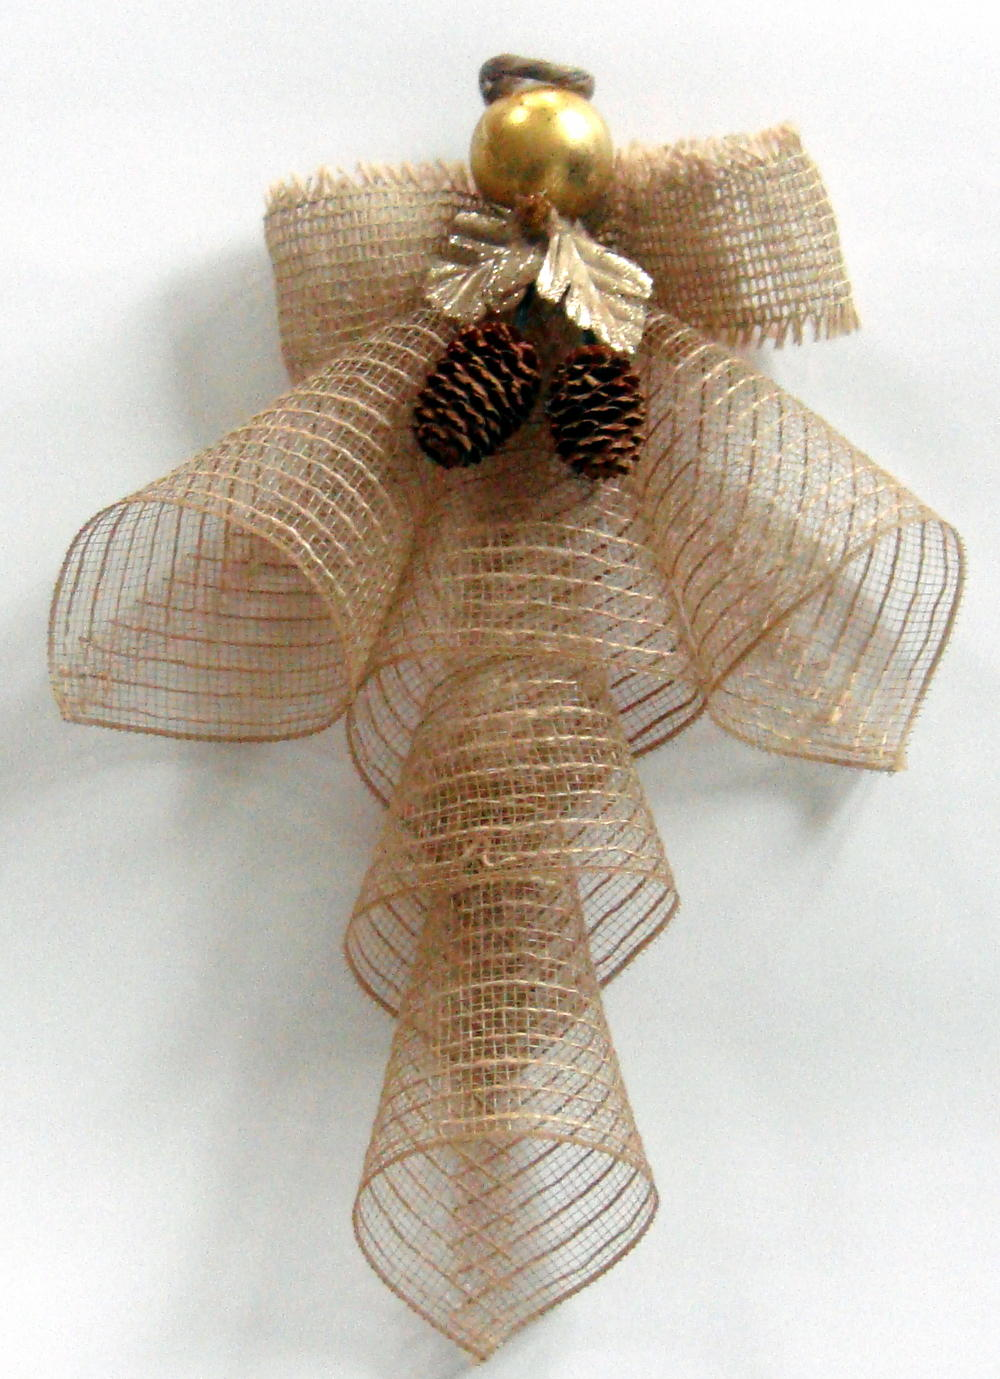 Mesh-Ribbon-Christmas-Angel_ExtraLarge1000_ID-1248666.jpg?v=1248666